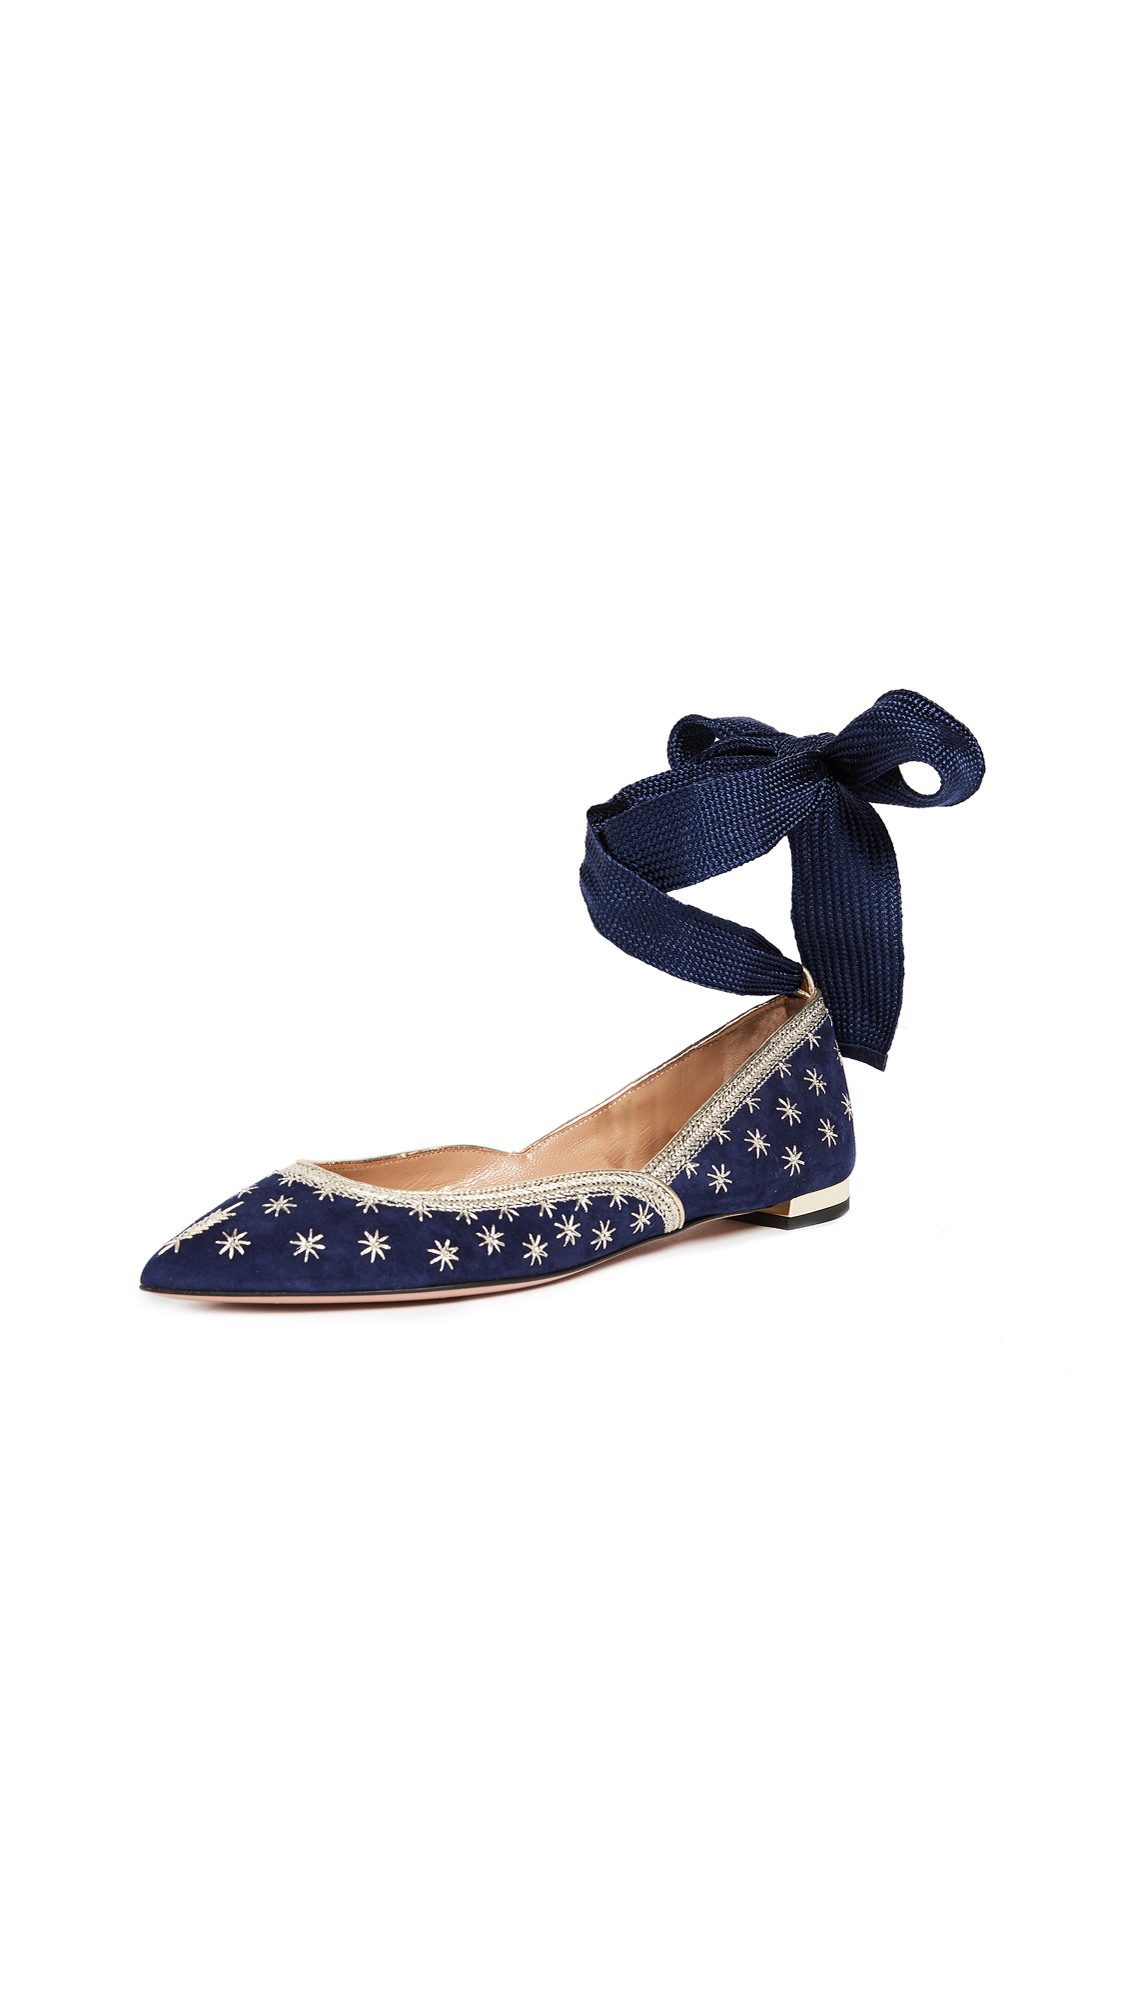 Aquazzura Bliss Ballet Flats - Navy